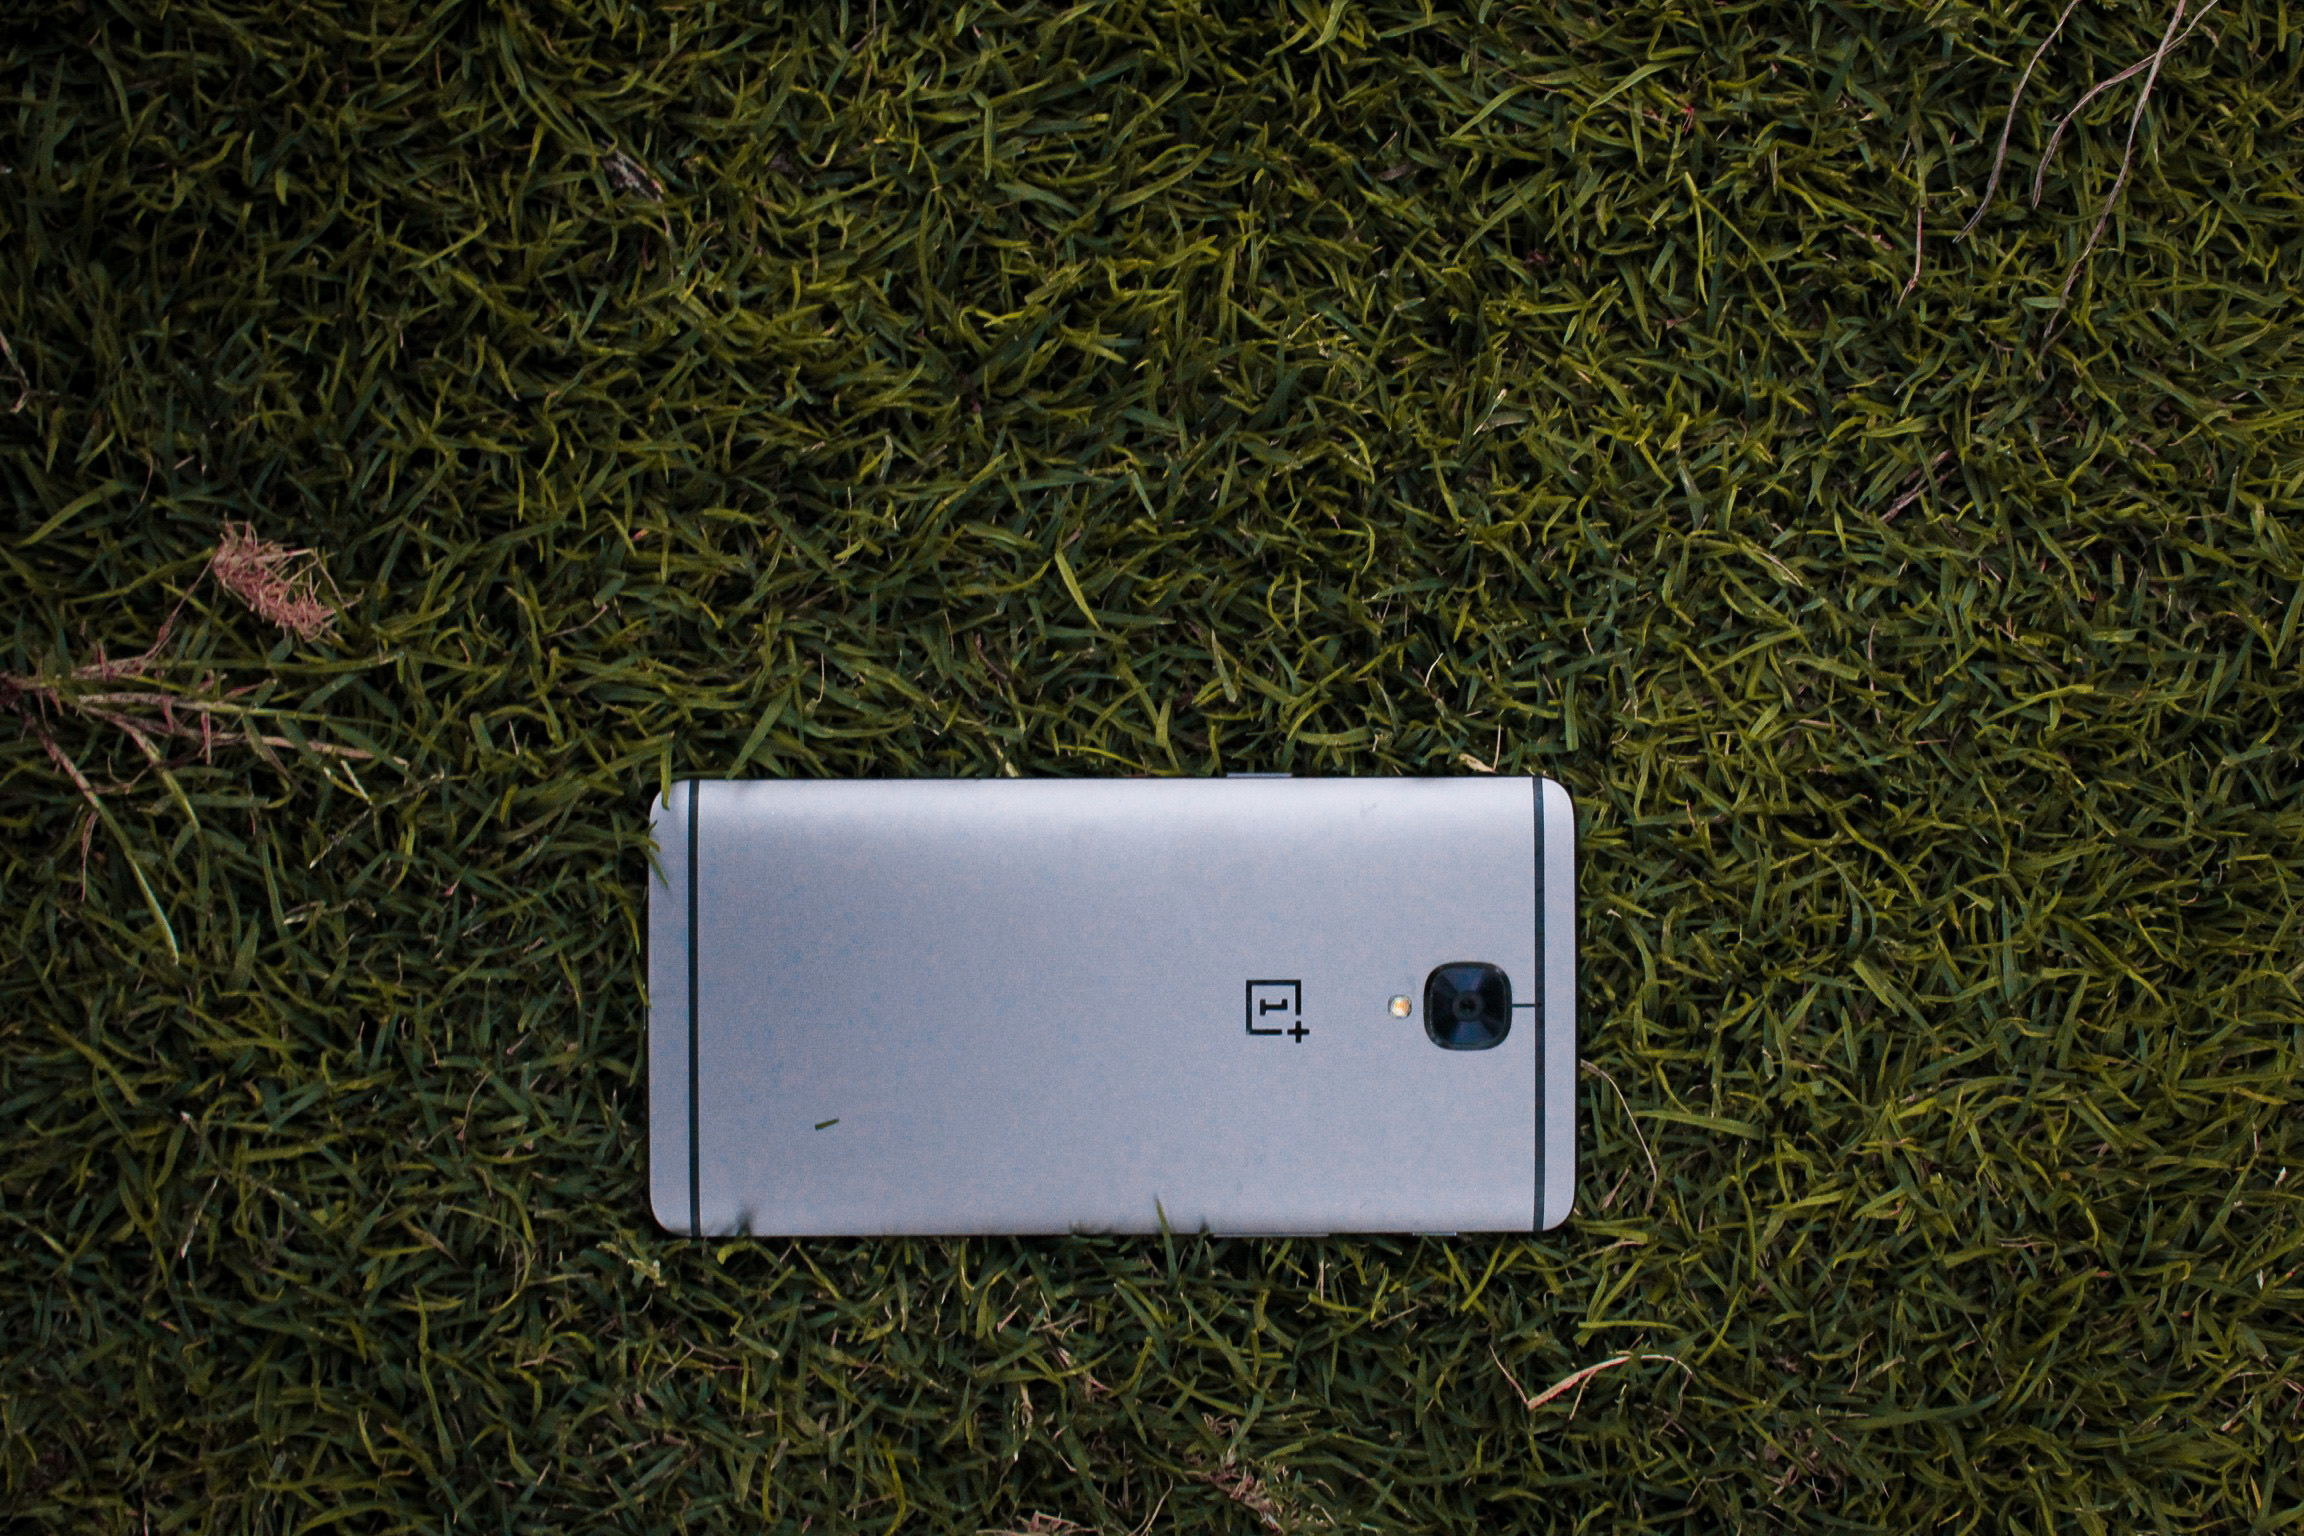 mobile in grass